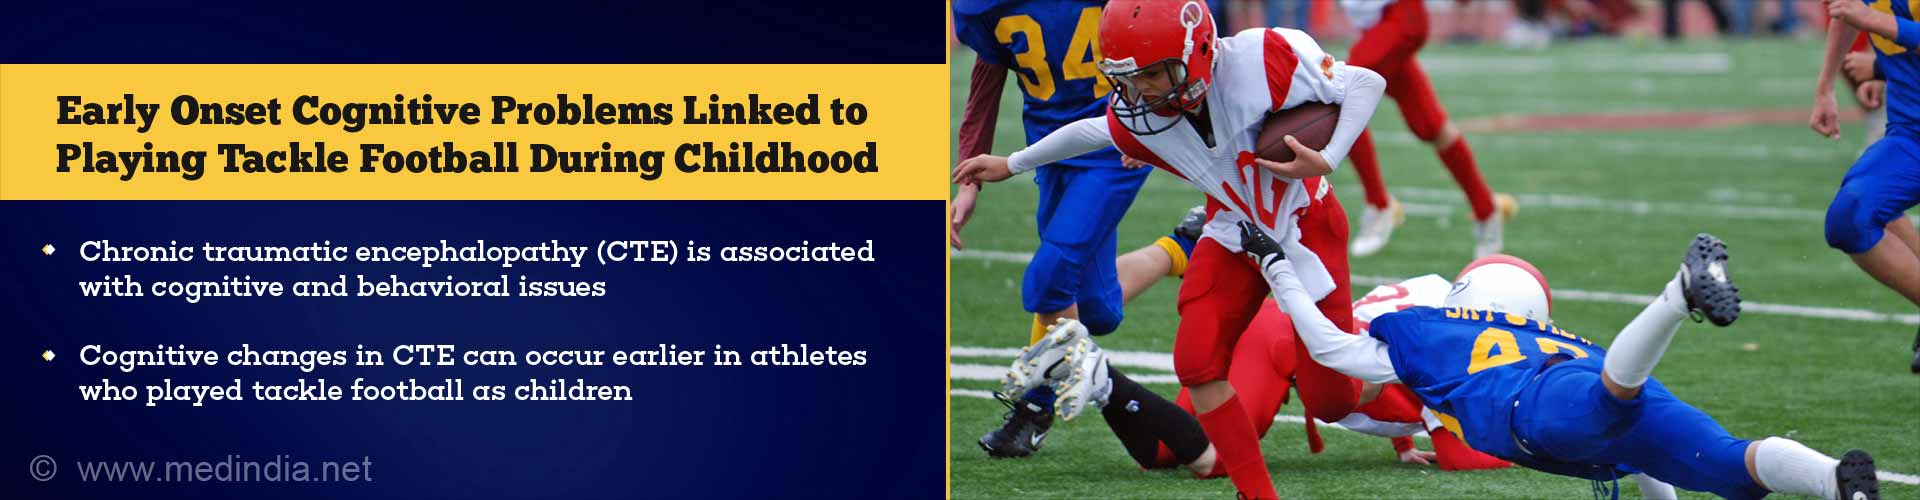 early onset cognitive problems linked to playing tackle football during childhood - chronic traumatic encaphalopathy (CTE) is associated with cognitive and behavioral issues - cognitive changes CTE can occur earlier in athletes who plated tackle football as children